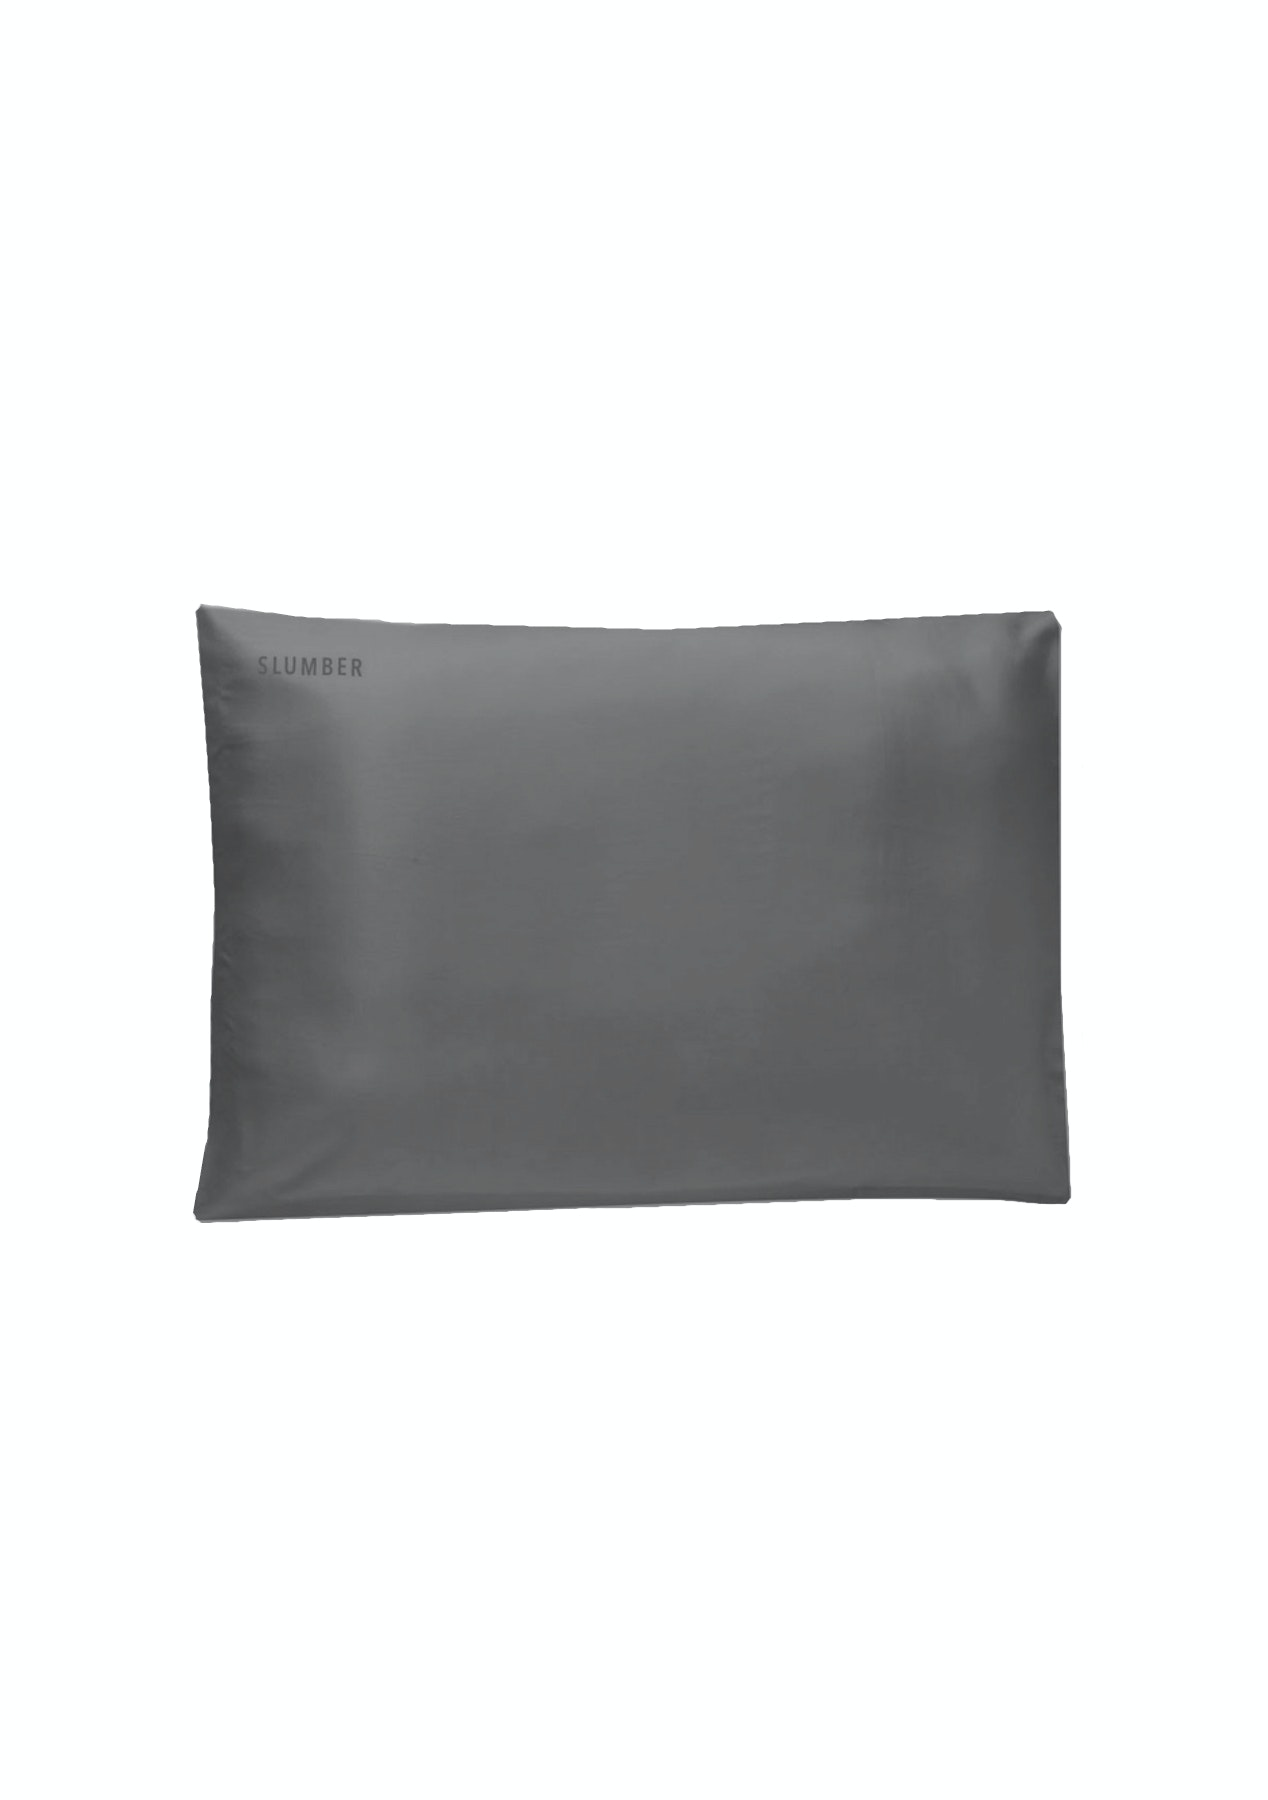 SLUMBER 100%  SILK PILLOWCASE - TWO PACK - Charcoal